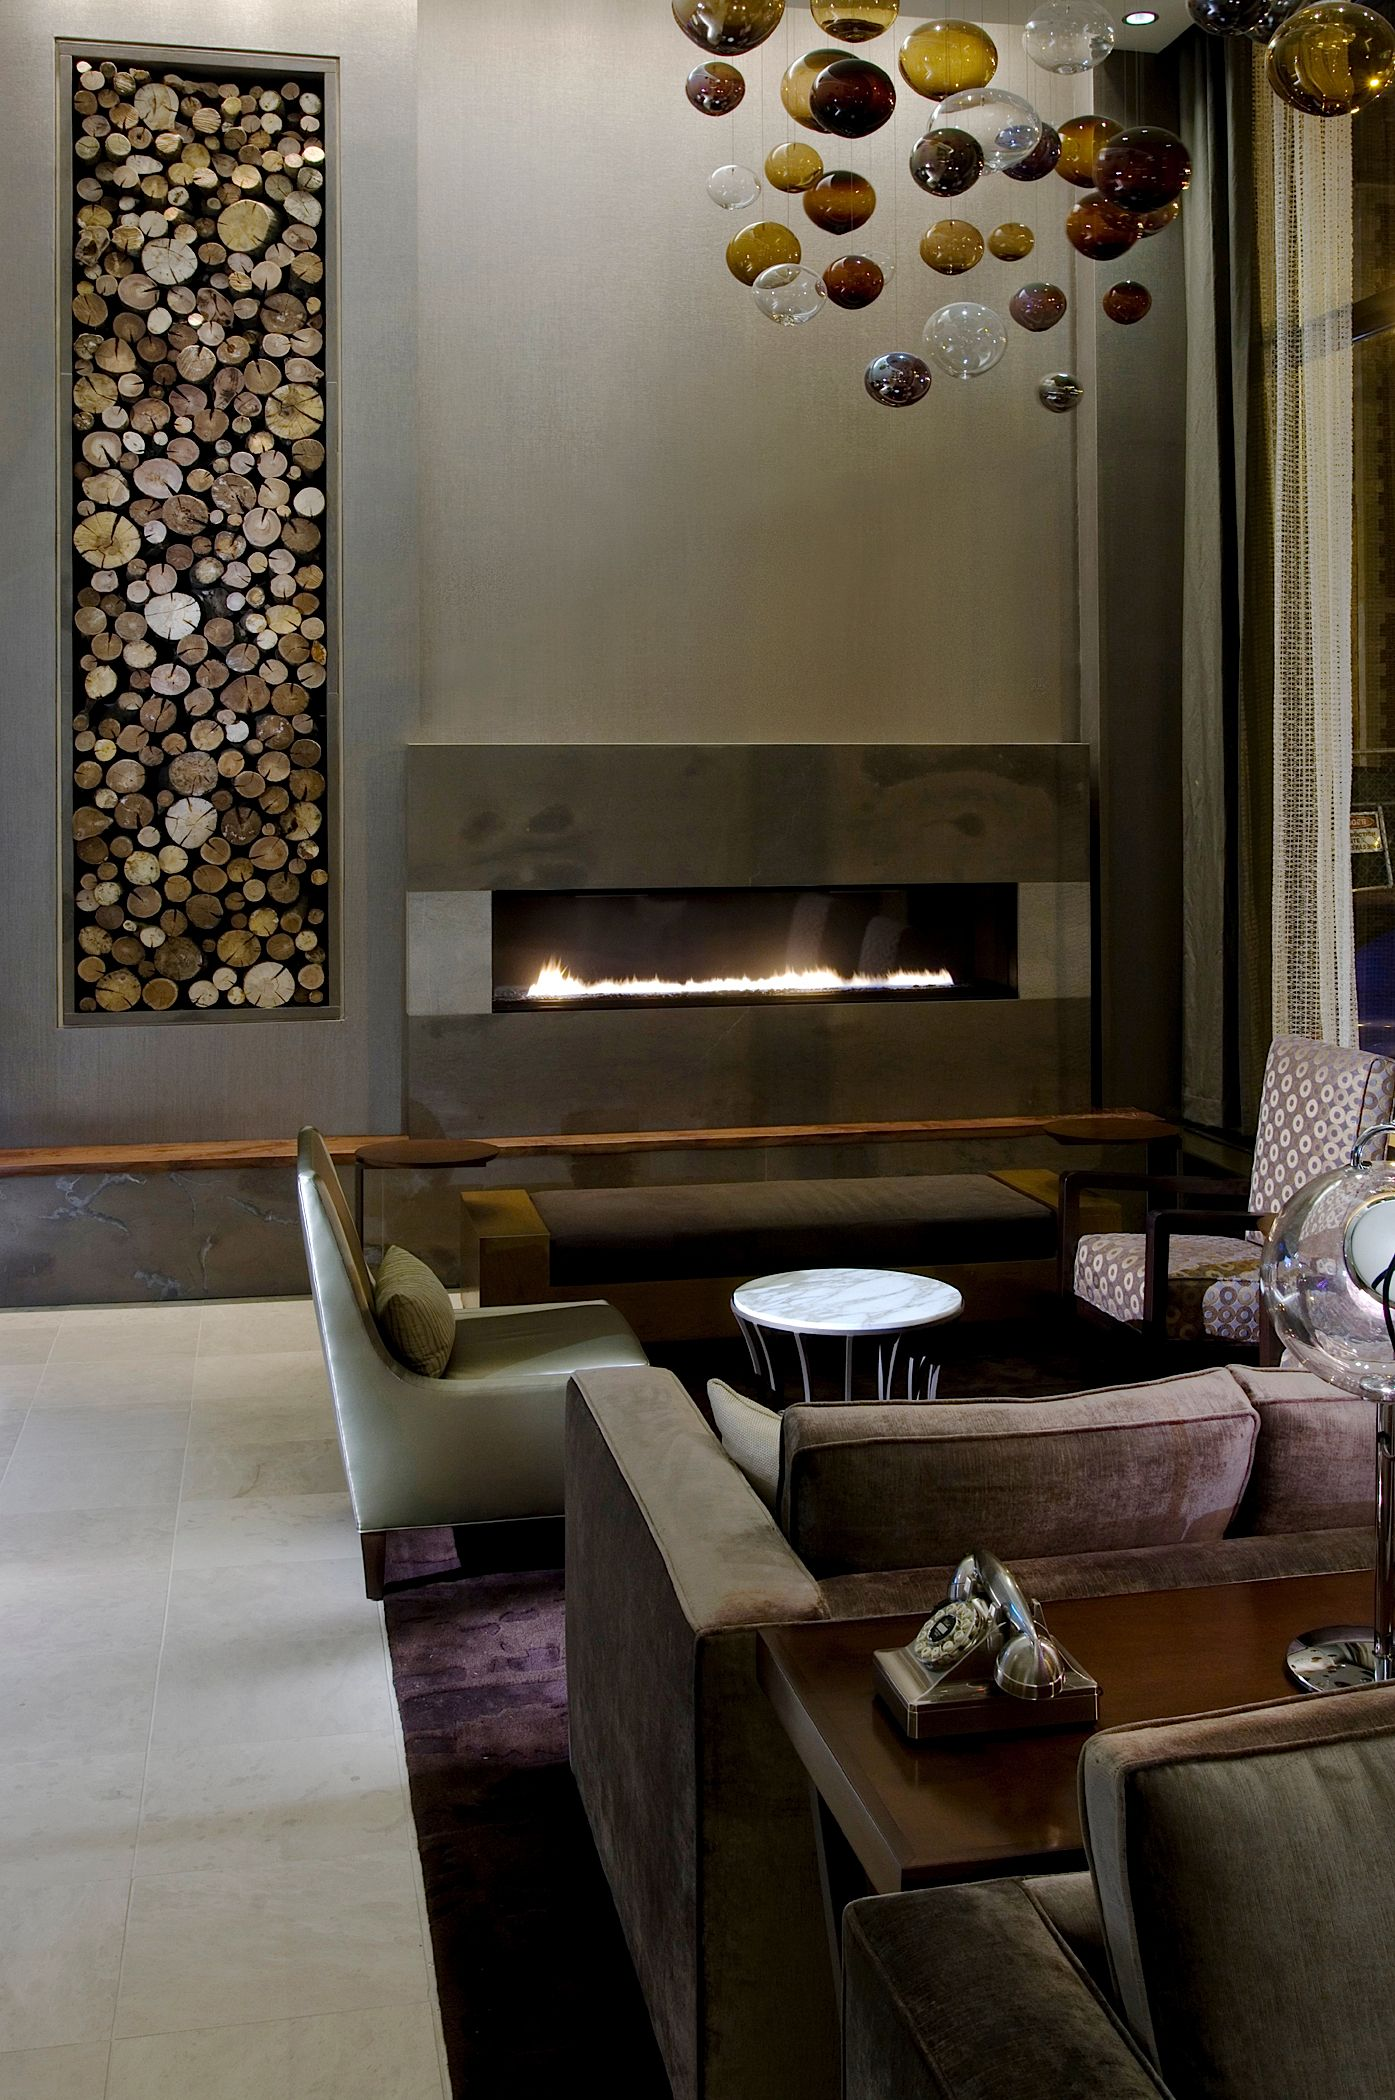 Modern Hotel Room: Lobby Fireplace At Chicago's Premiere Boutique Hotel